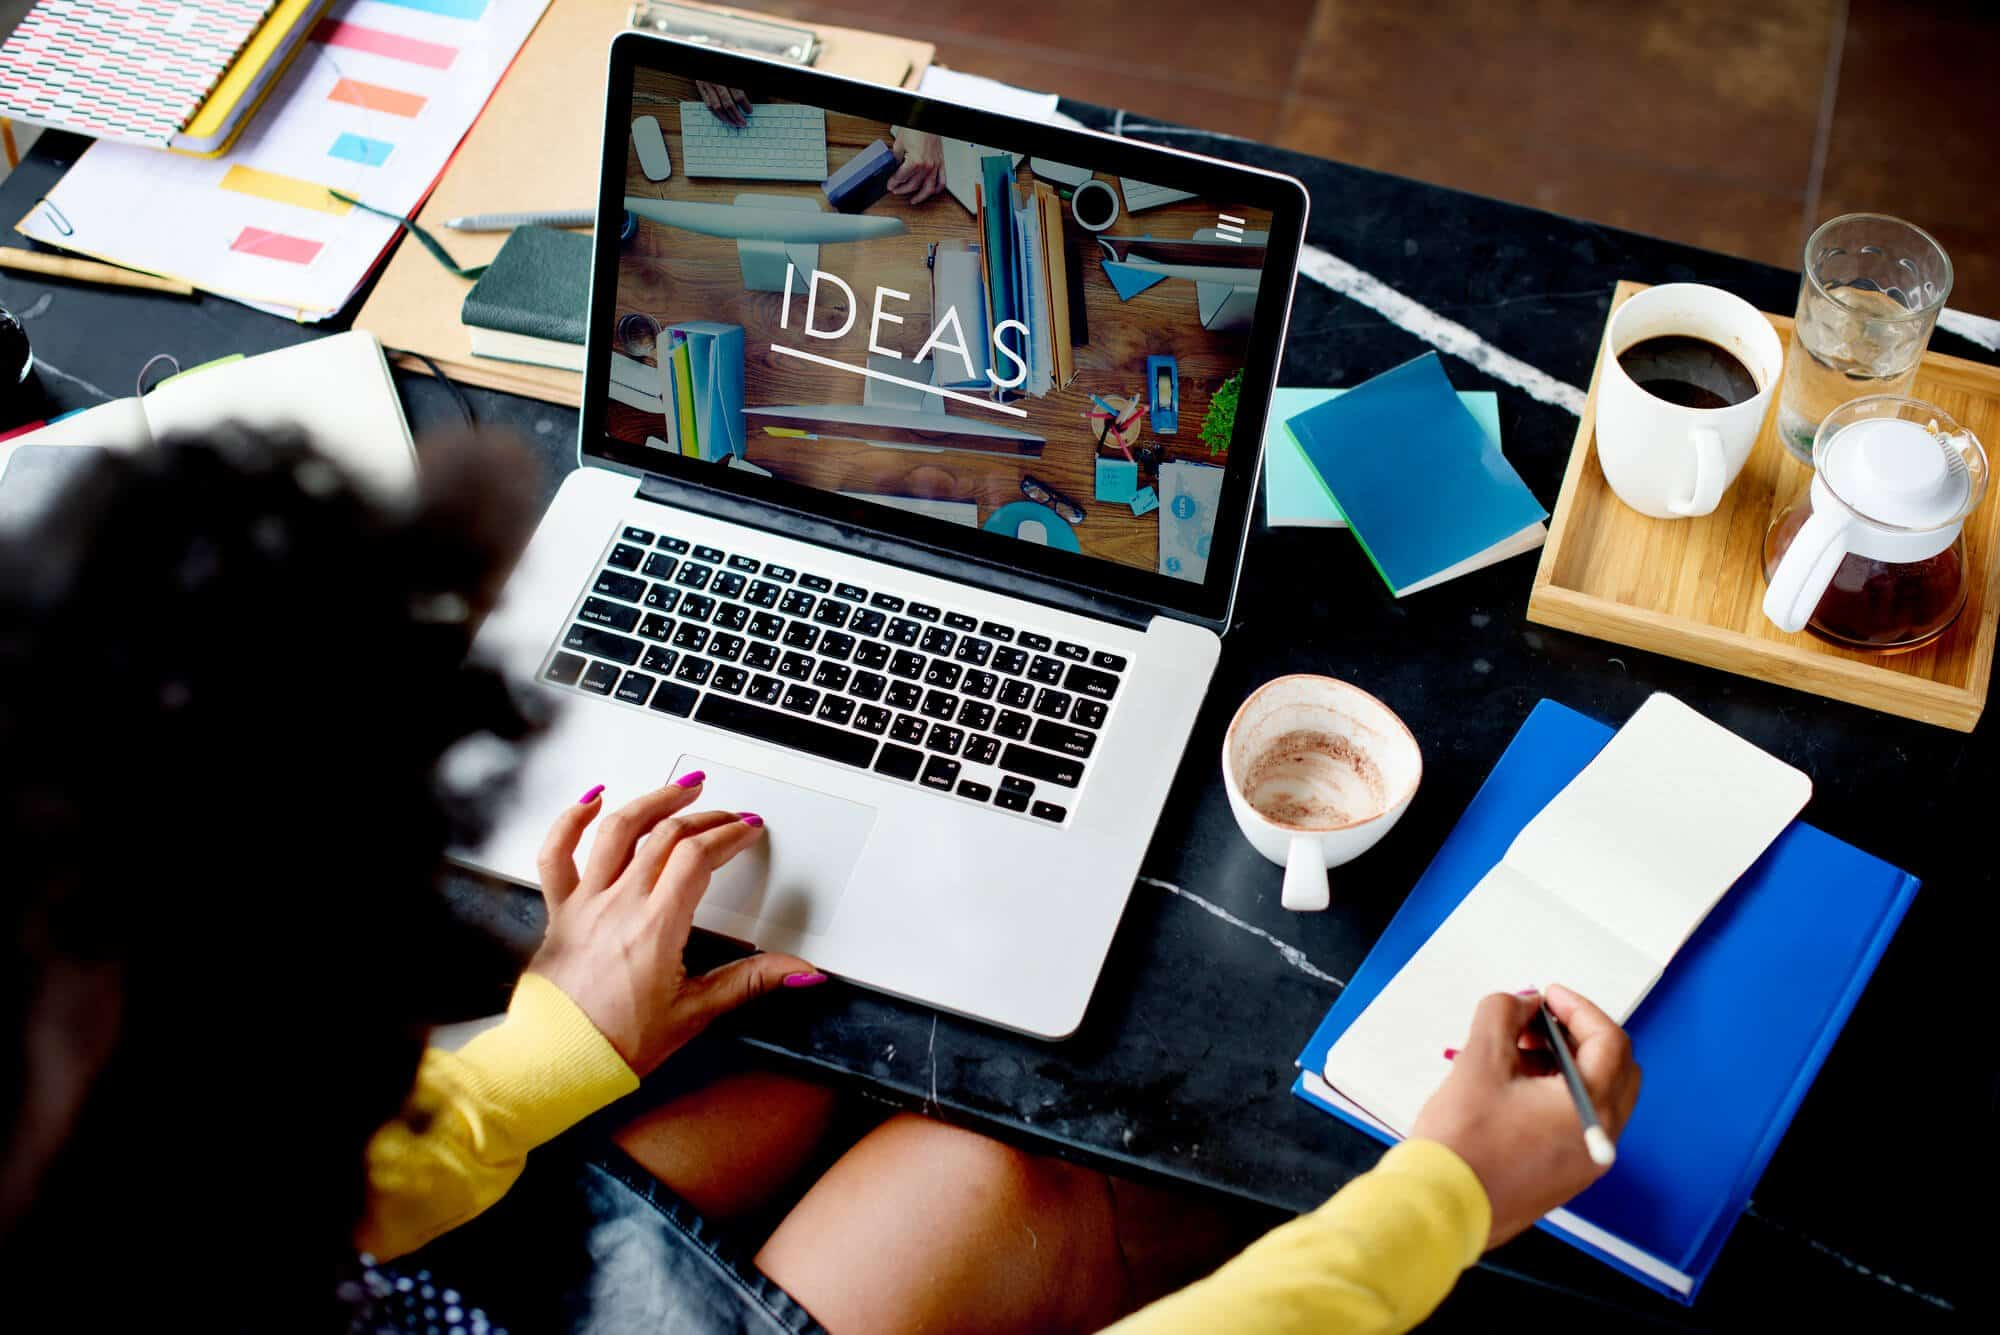 ideas on starting a business